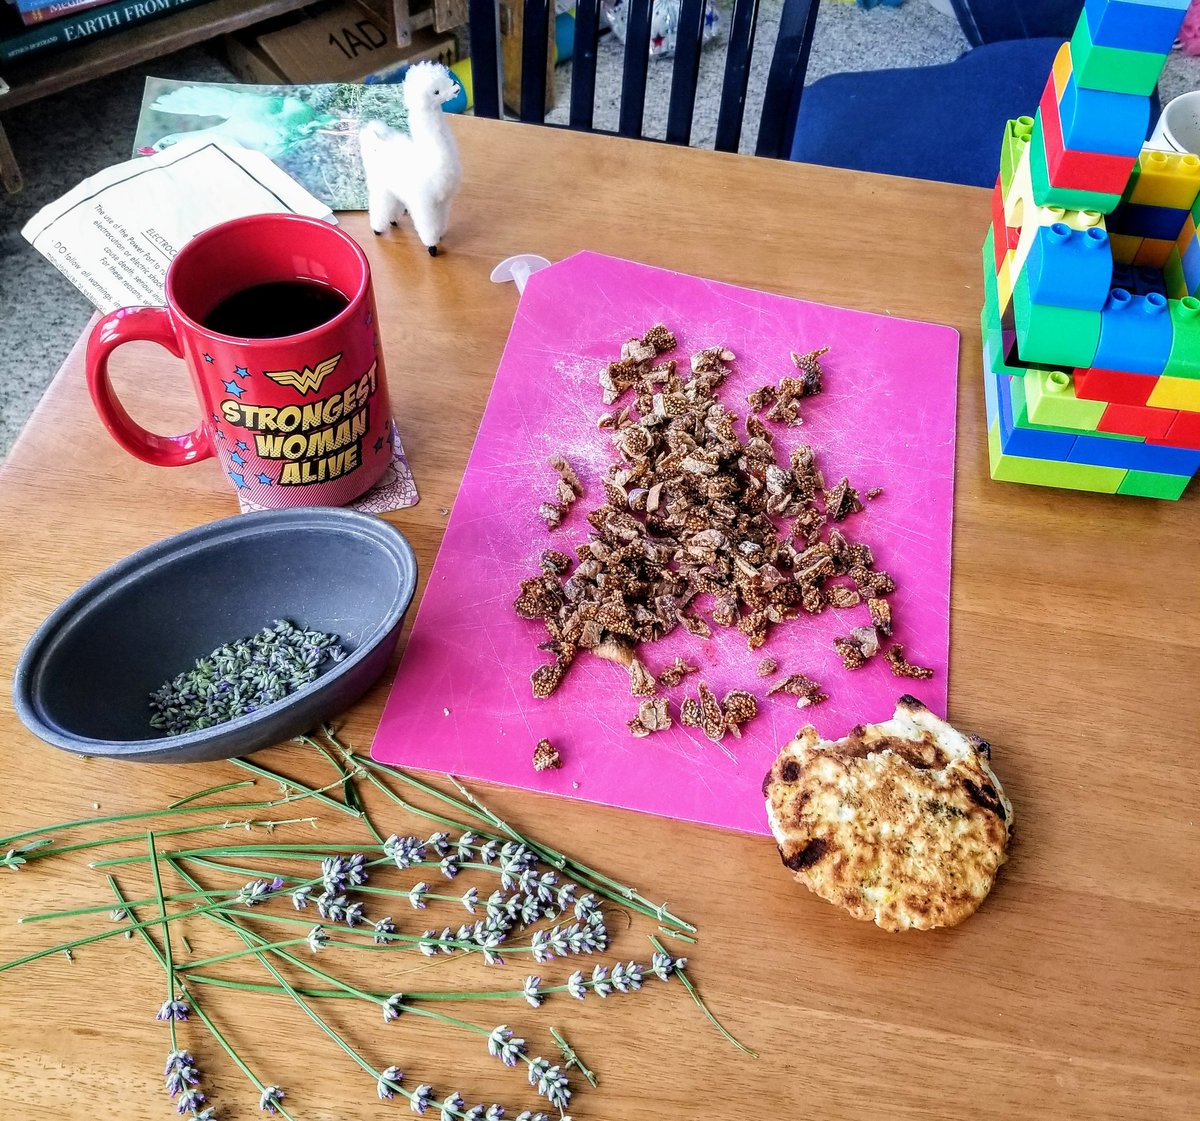 Happy Saturday friends! Coffee. Legos. Savory pancakes. And the beginnings of the lavender fig bread experiment.   #mamalife #homemade #bakersnightmare<br>http://pic.twitter.com/PPggCWJTPS